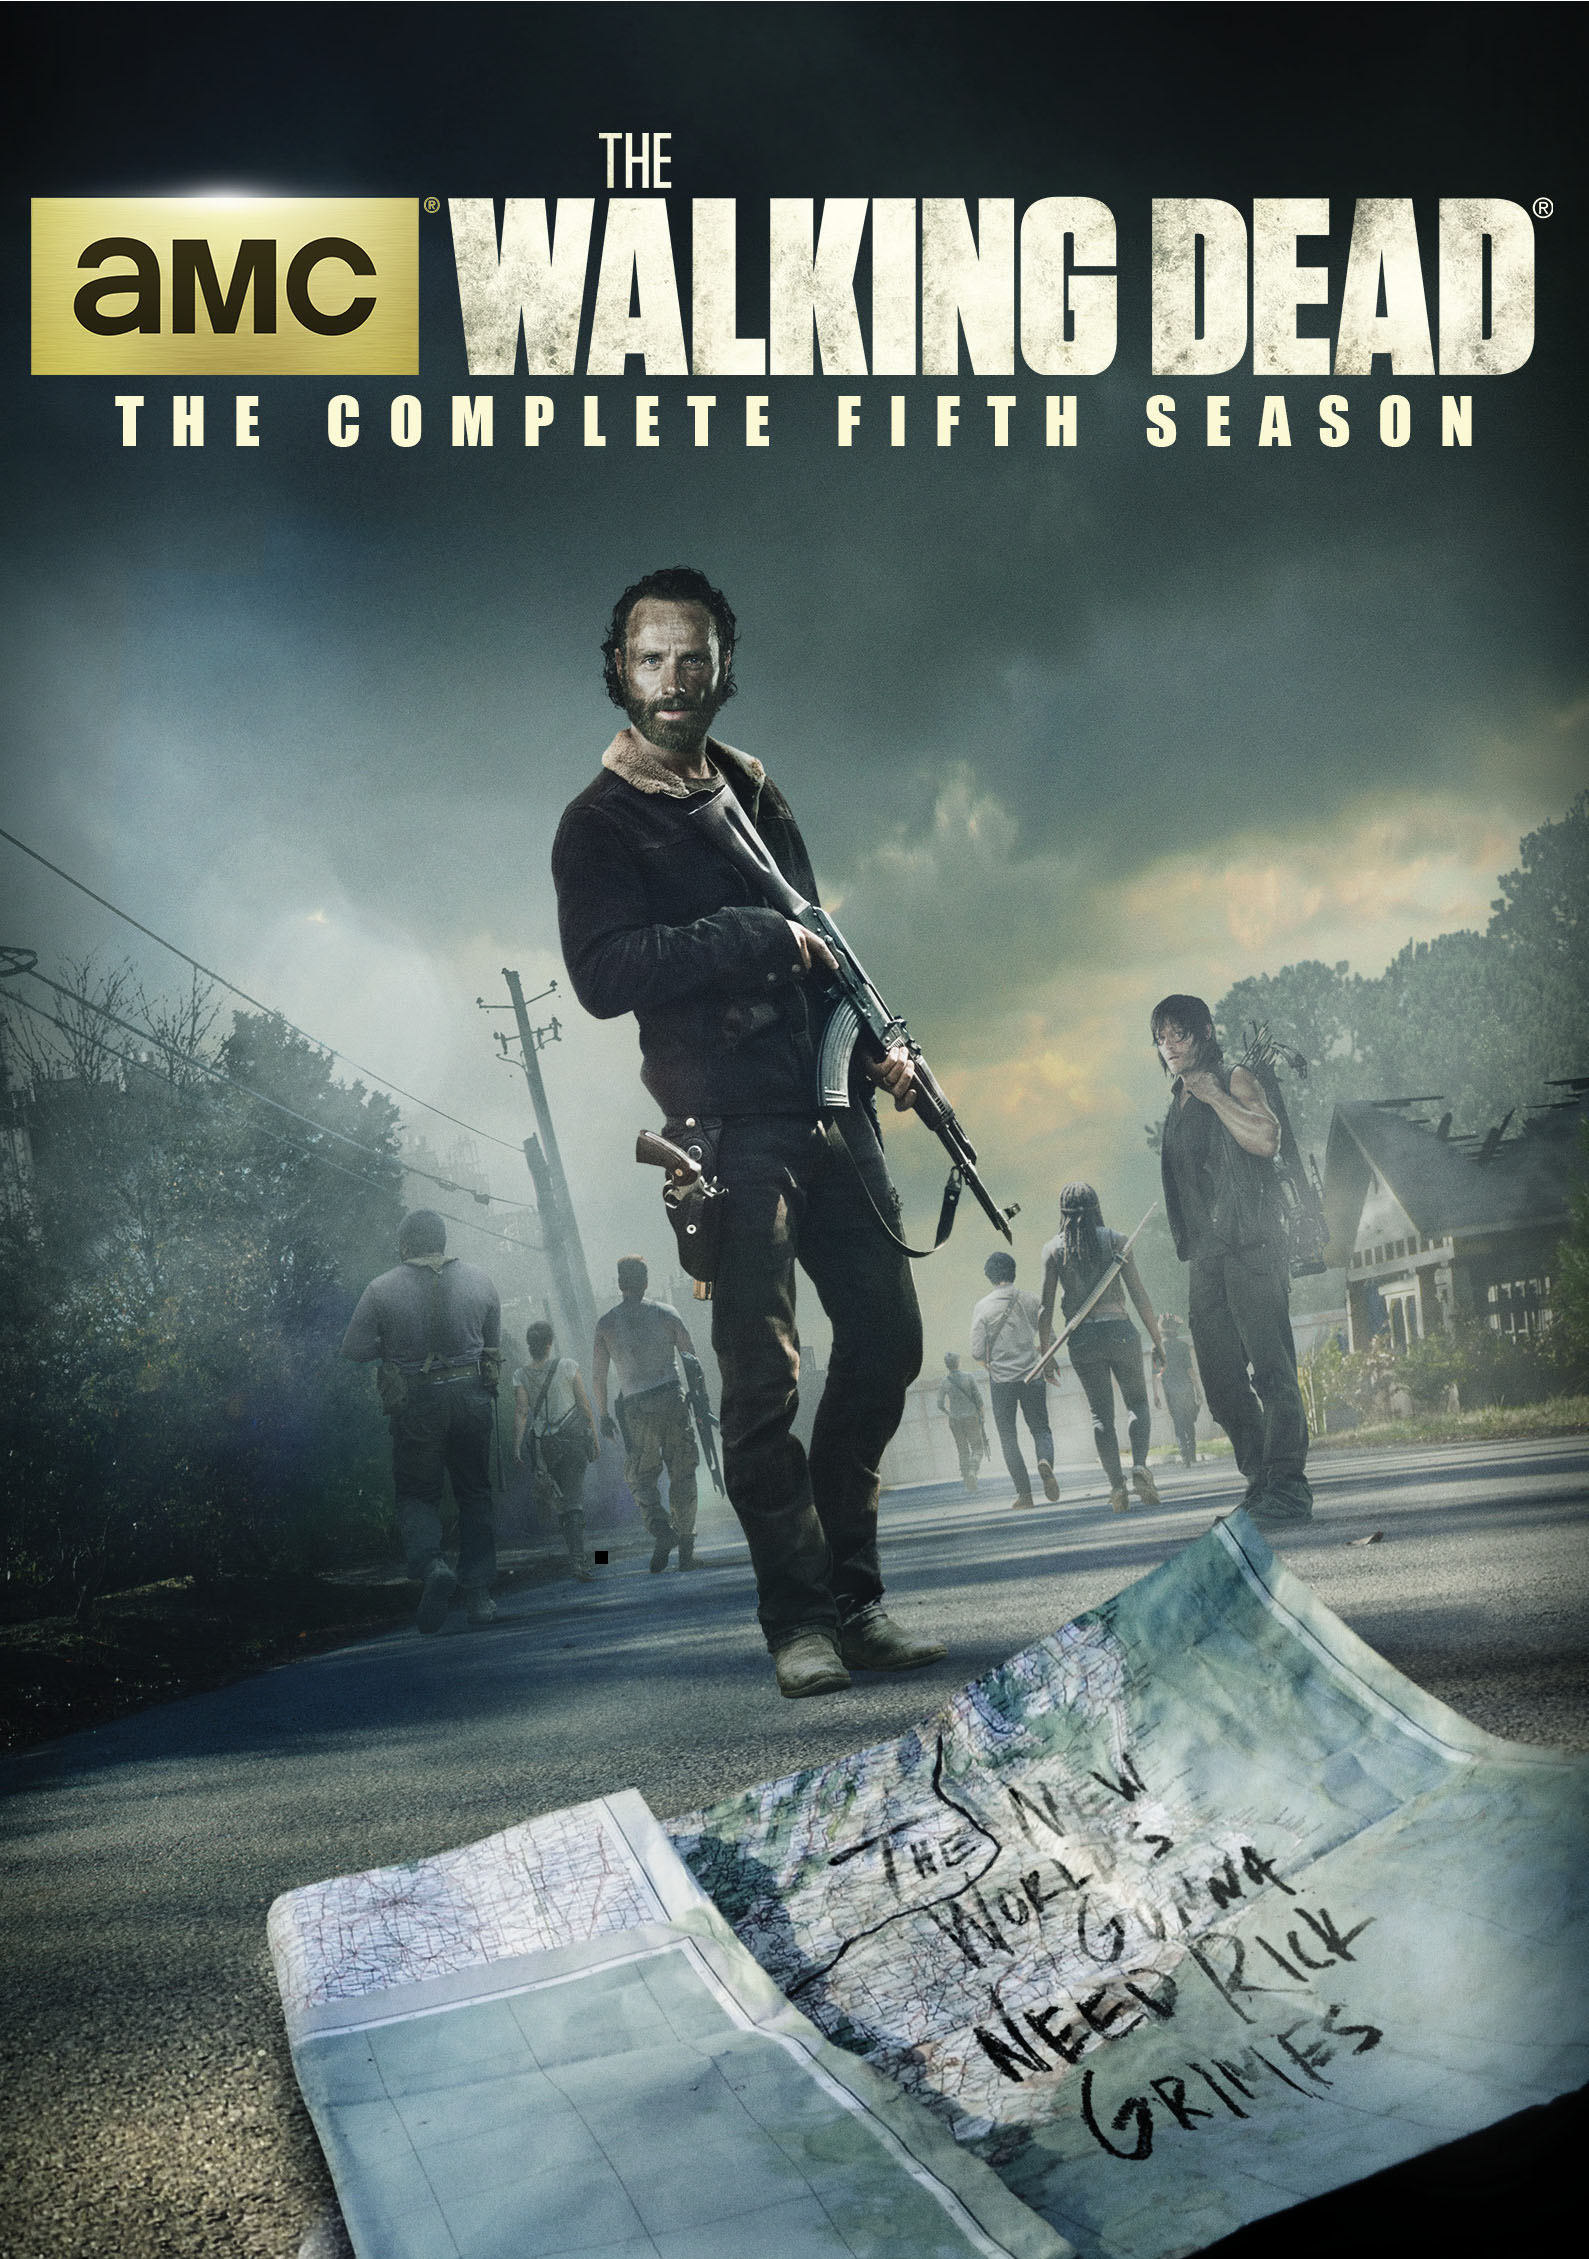 The Walking Dead Wallpapers Comics Hq The Walking Dead Pictures